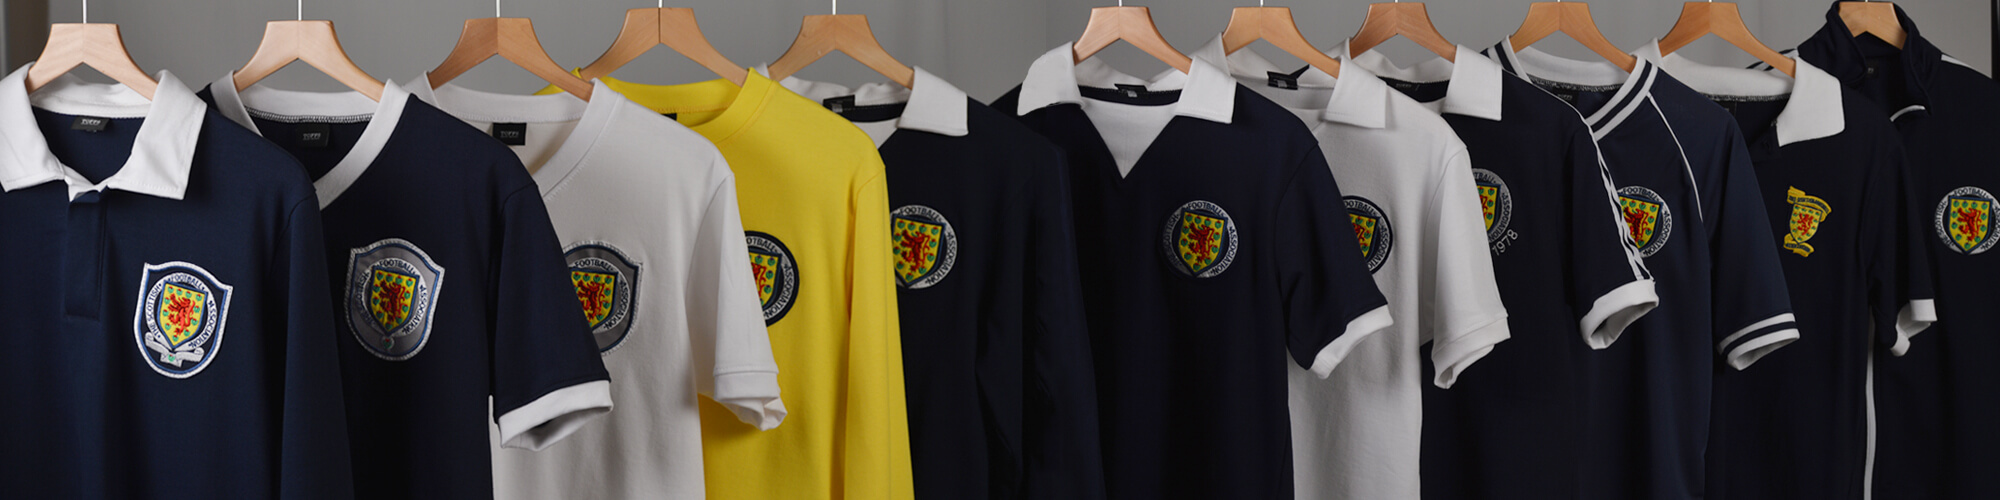 a509936cd85f Scotland Retro Football Shirts from TOFFS